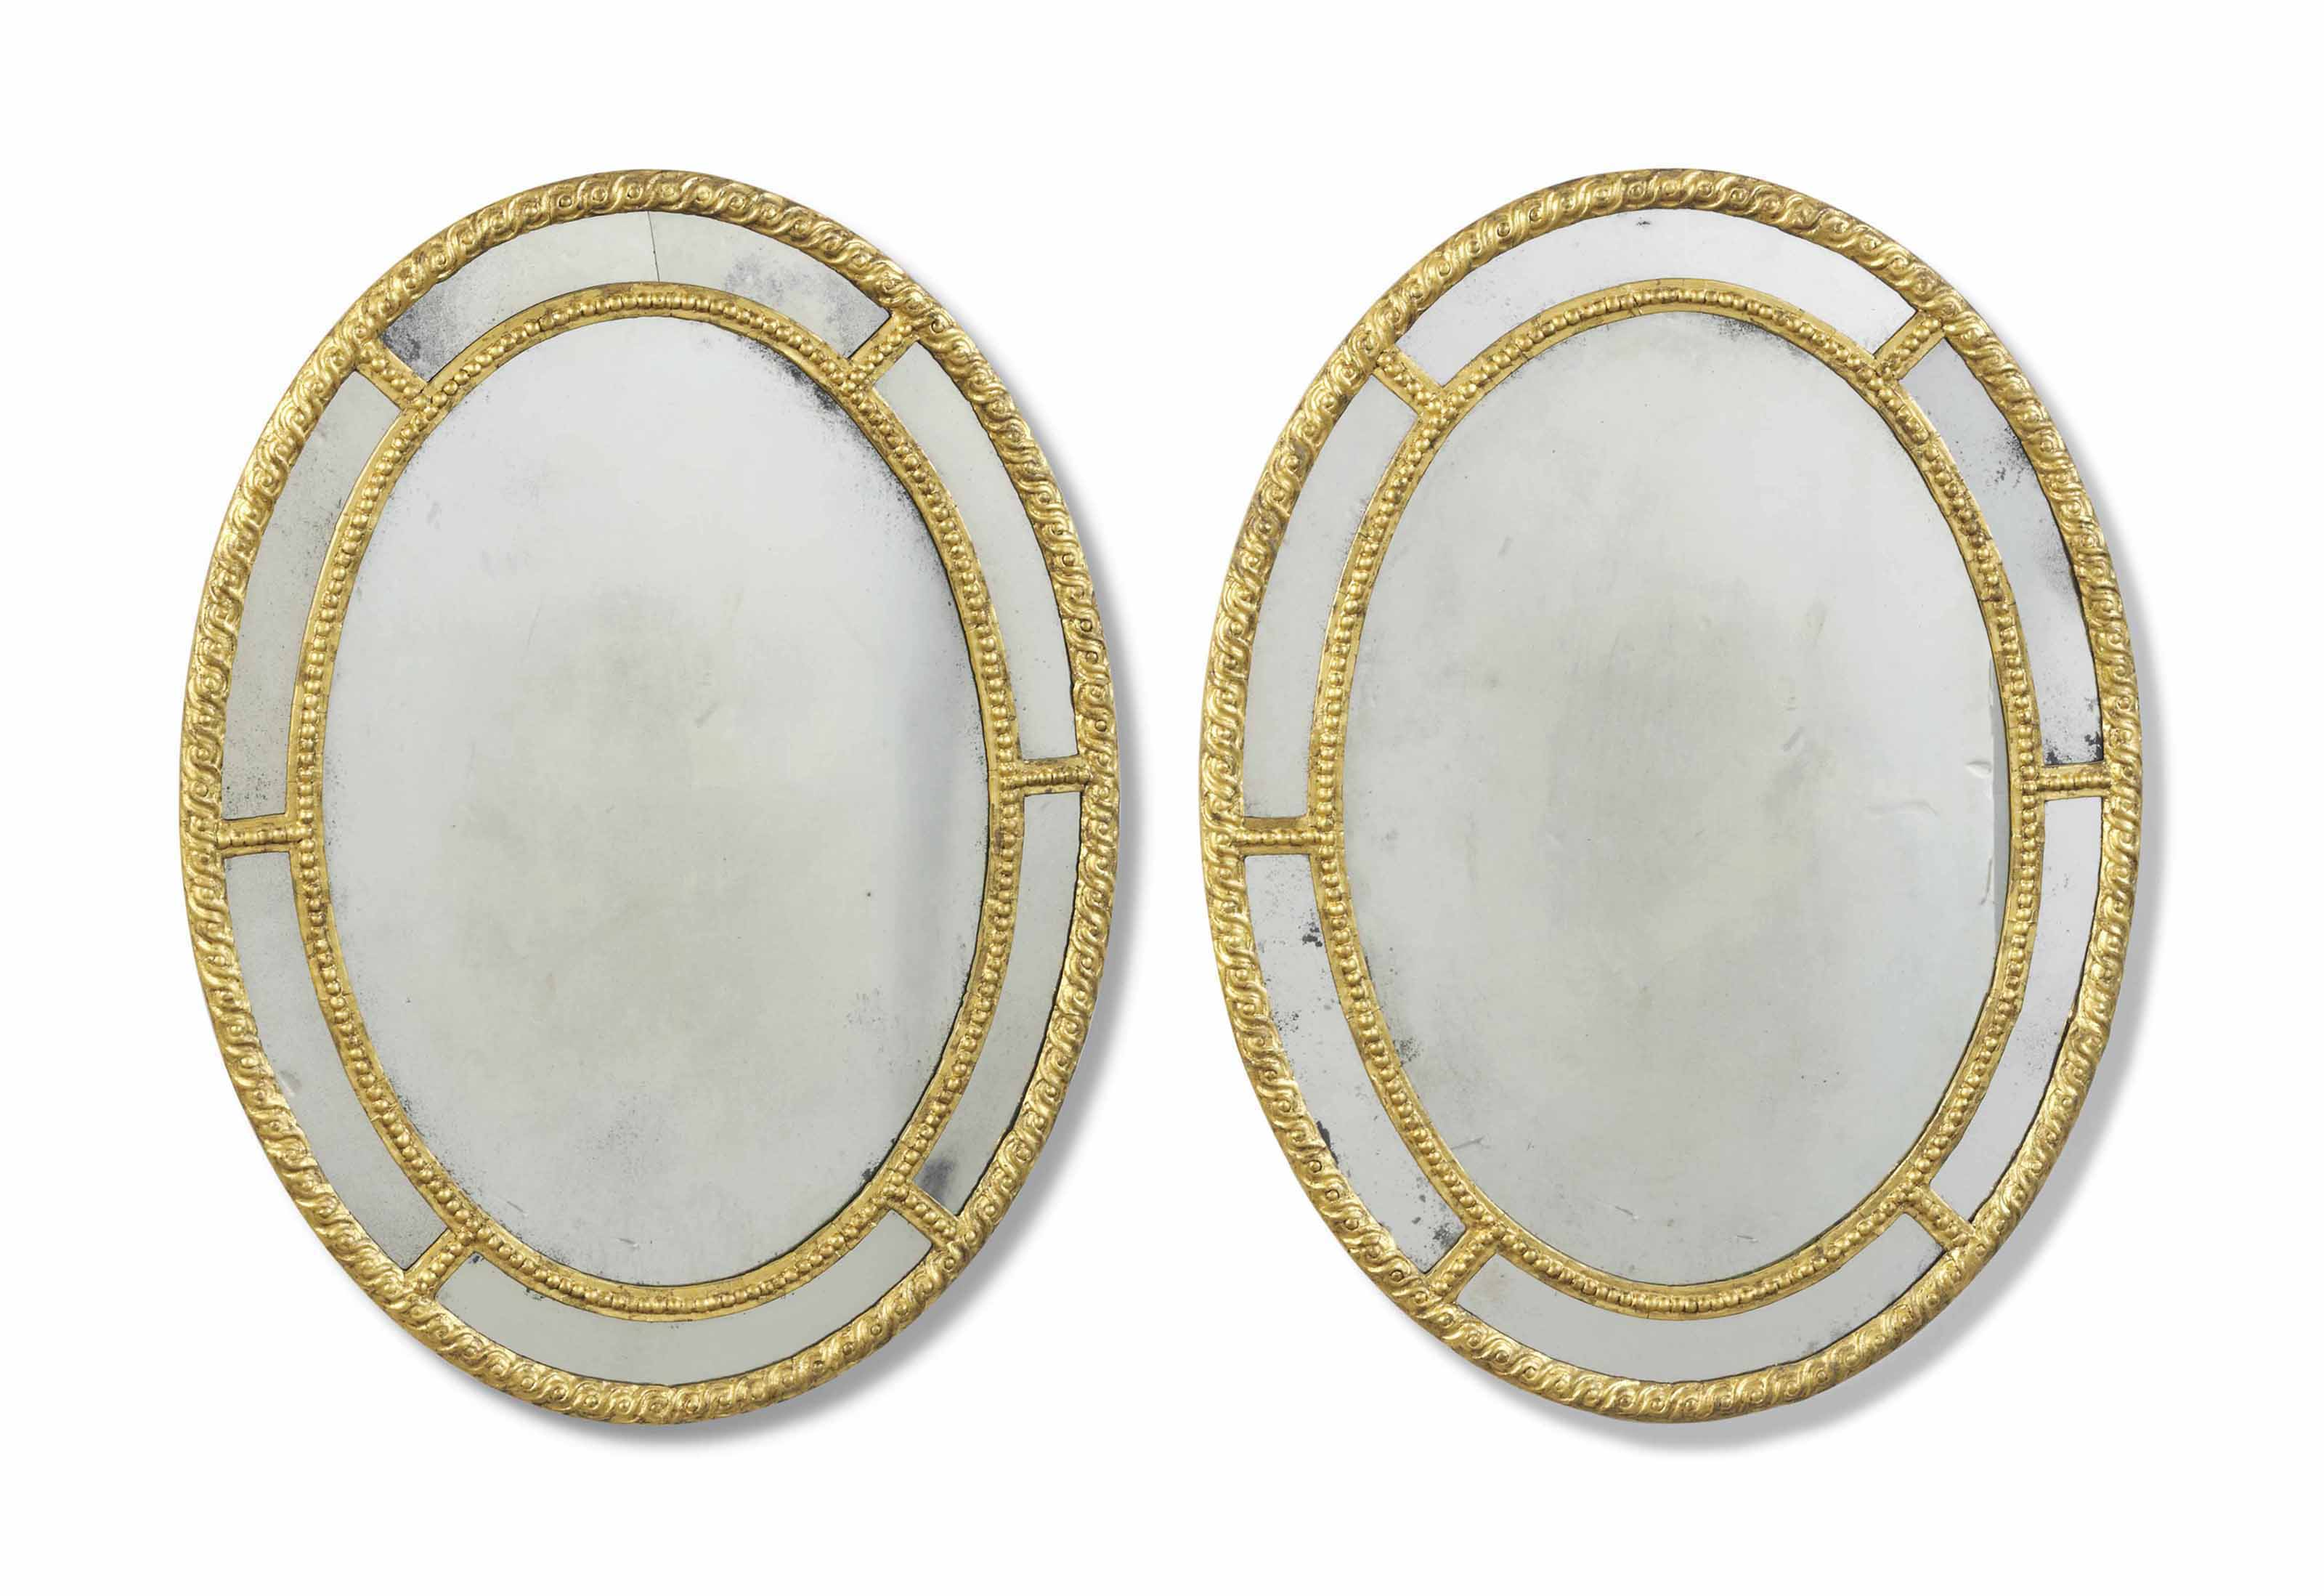 A PAIR OF GILTWOOD OVAL MARGIN